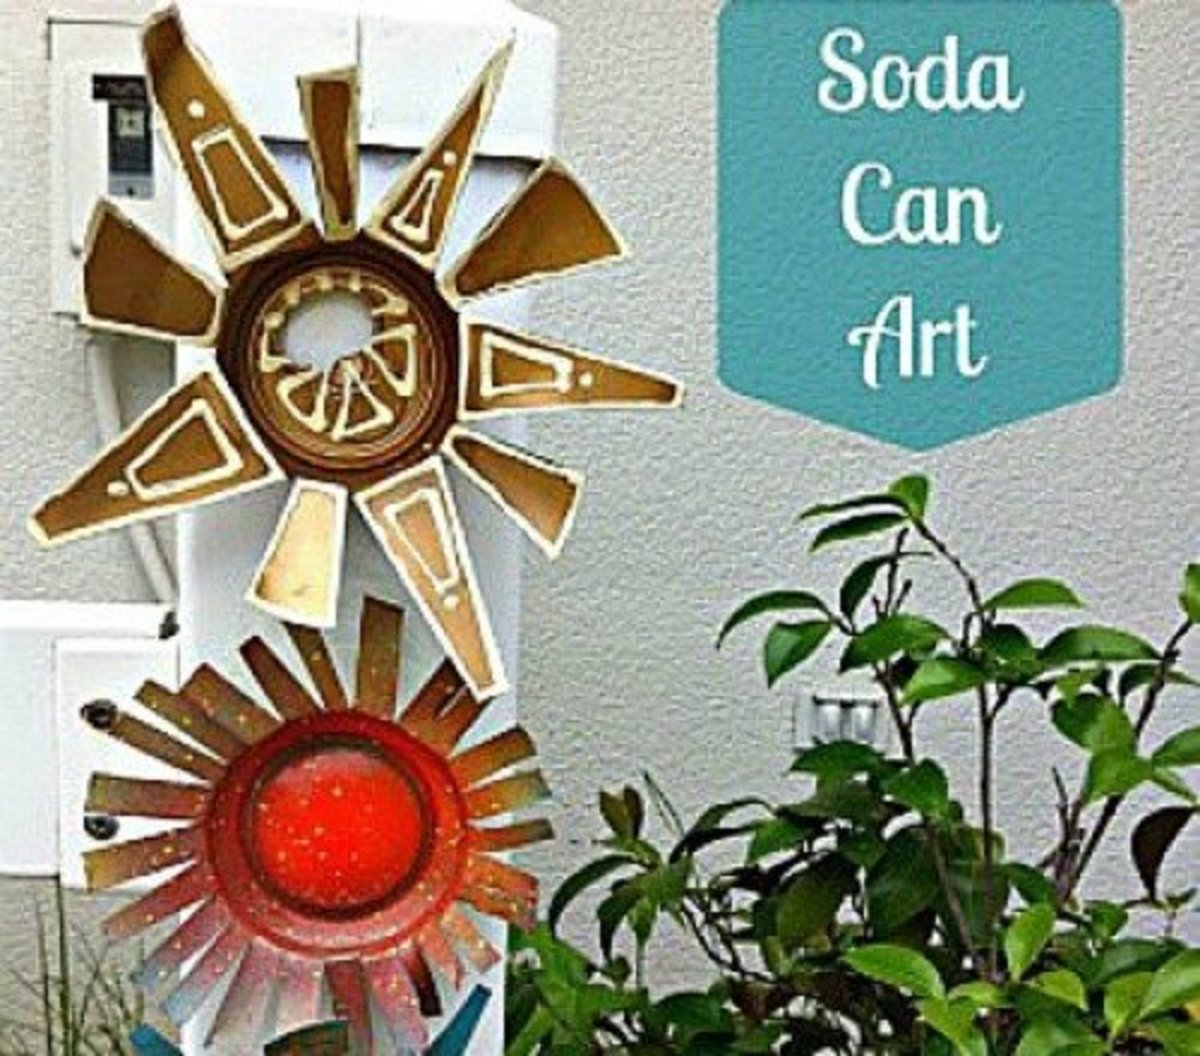 37 Awesome Aluminum Can Crafts to Make